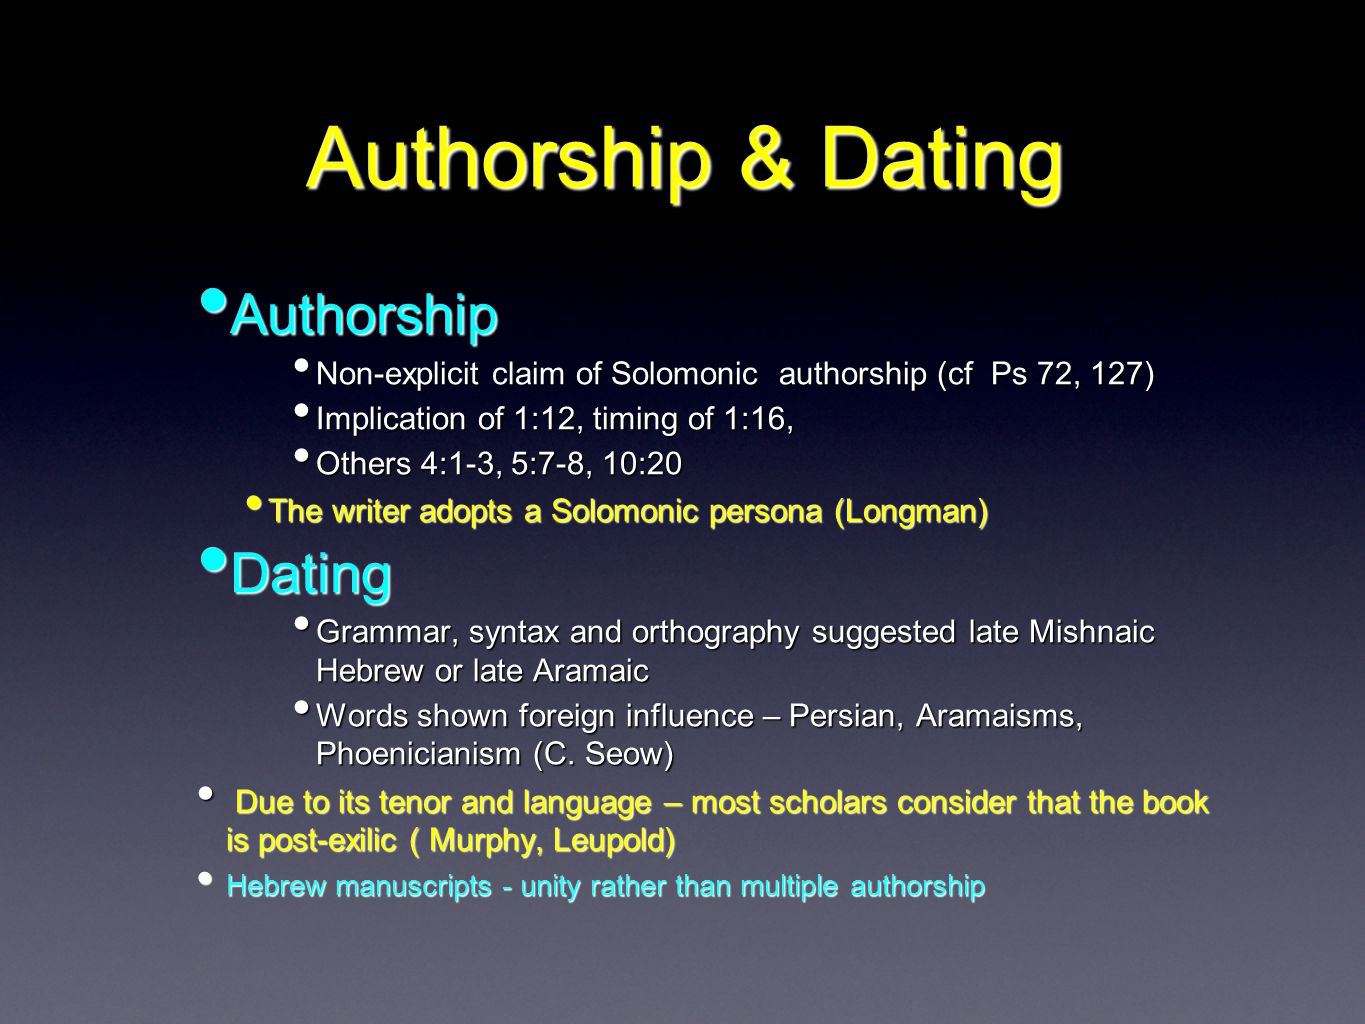 Authorship & Dating Authorship Authorship Non-explicit claim of Solomonic authorship (cf Ps 72, 127) Non-explicit claim of Solomonic authorship (cf Ps 72, 127) Implication of 1:12, timing of 1:16, Implication of 1:12, timing of 1:16, Others 4:1-3, 5:7-8, 10:20 Others 4:1-3, 5:7-8, 10:20 The writer adopts a Solomonic persona (Longman) The writer adopts a Solomonic persona (Longman) Dating Dating Grammar, syntax and orthography suggested late Mishnaic Hebrew or late Aramaic Grammar, syntax and orthography suggested late Mishnaic Hebrew or late Aramaic Words shown foreign influence – Persian, Aramaisms, Phoenicianism (C.